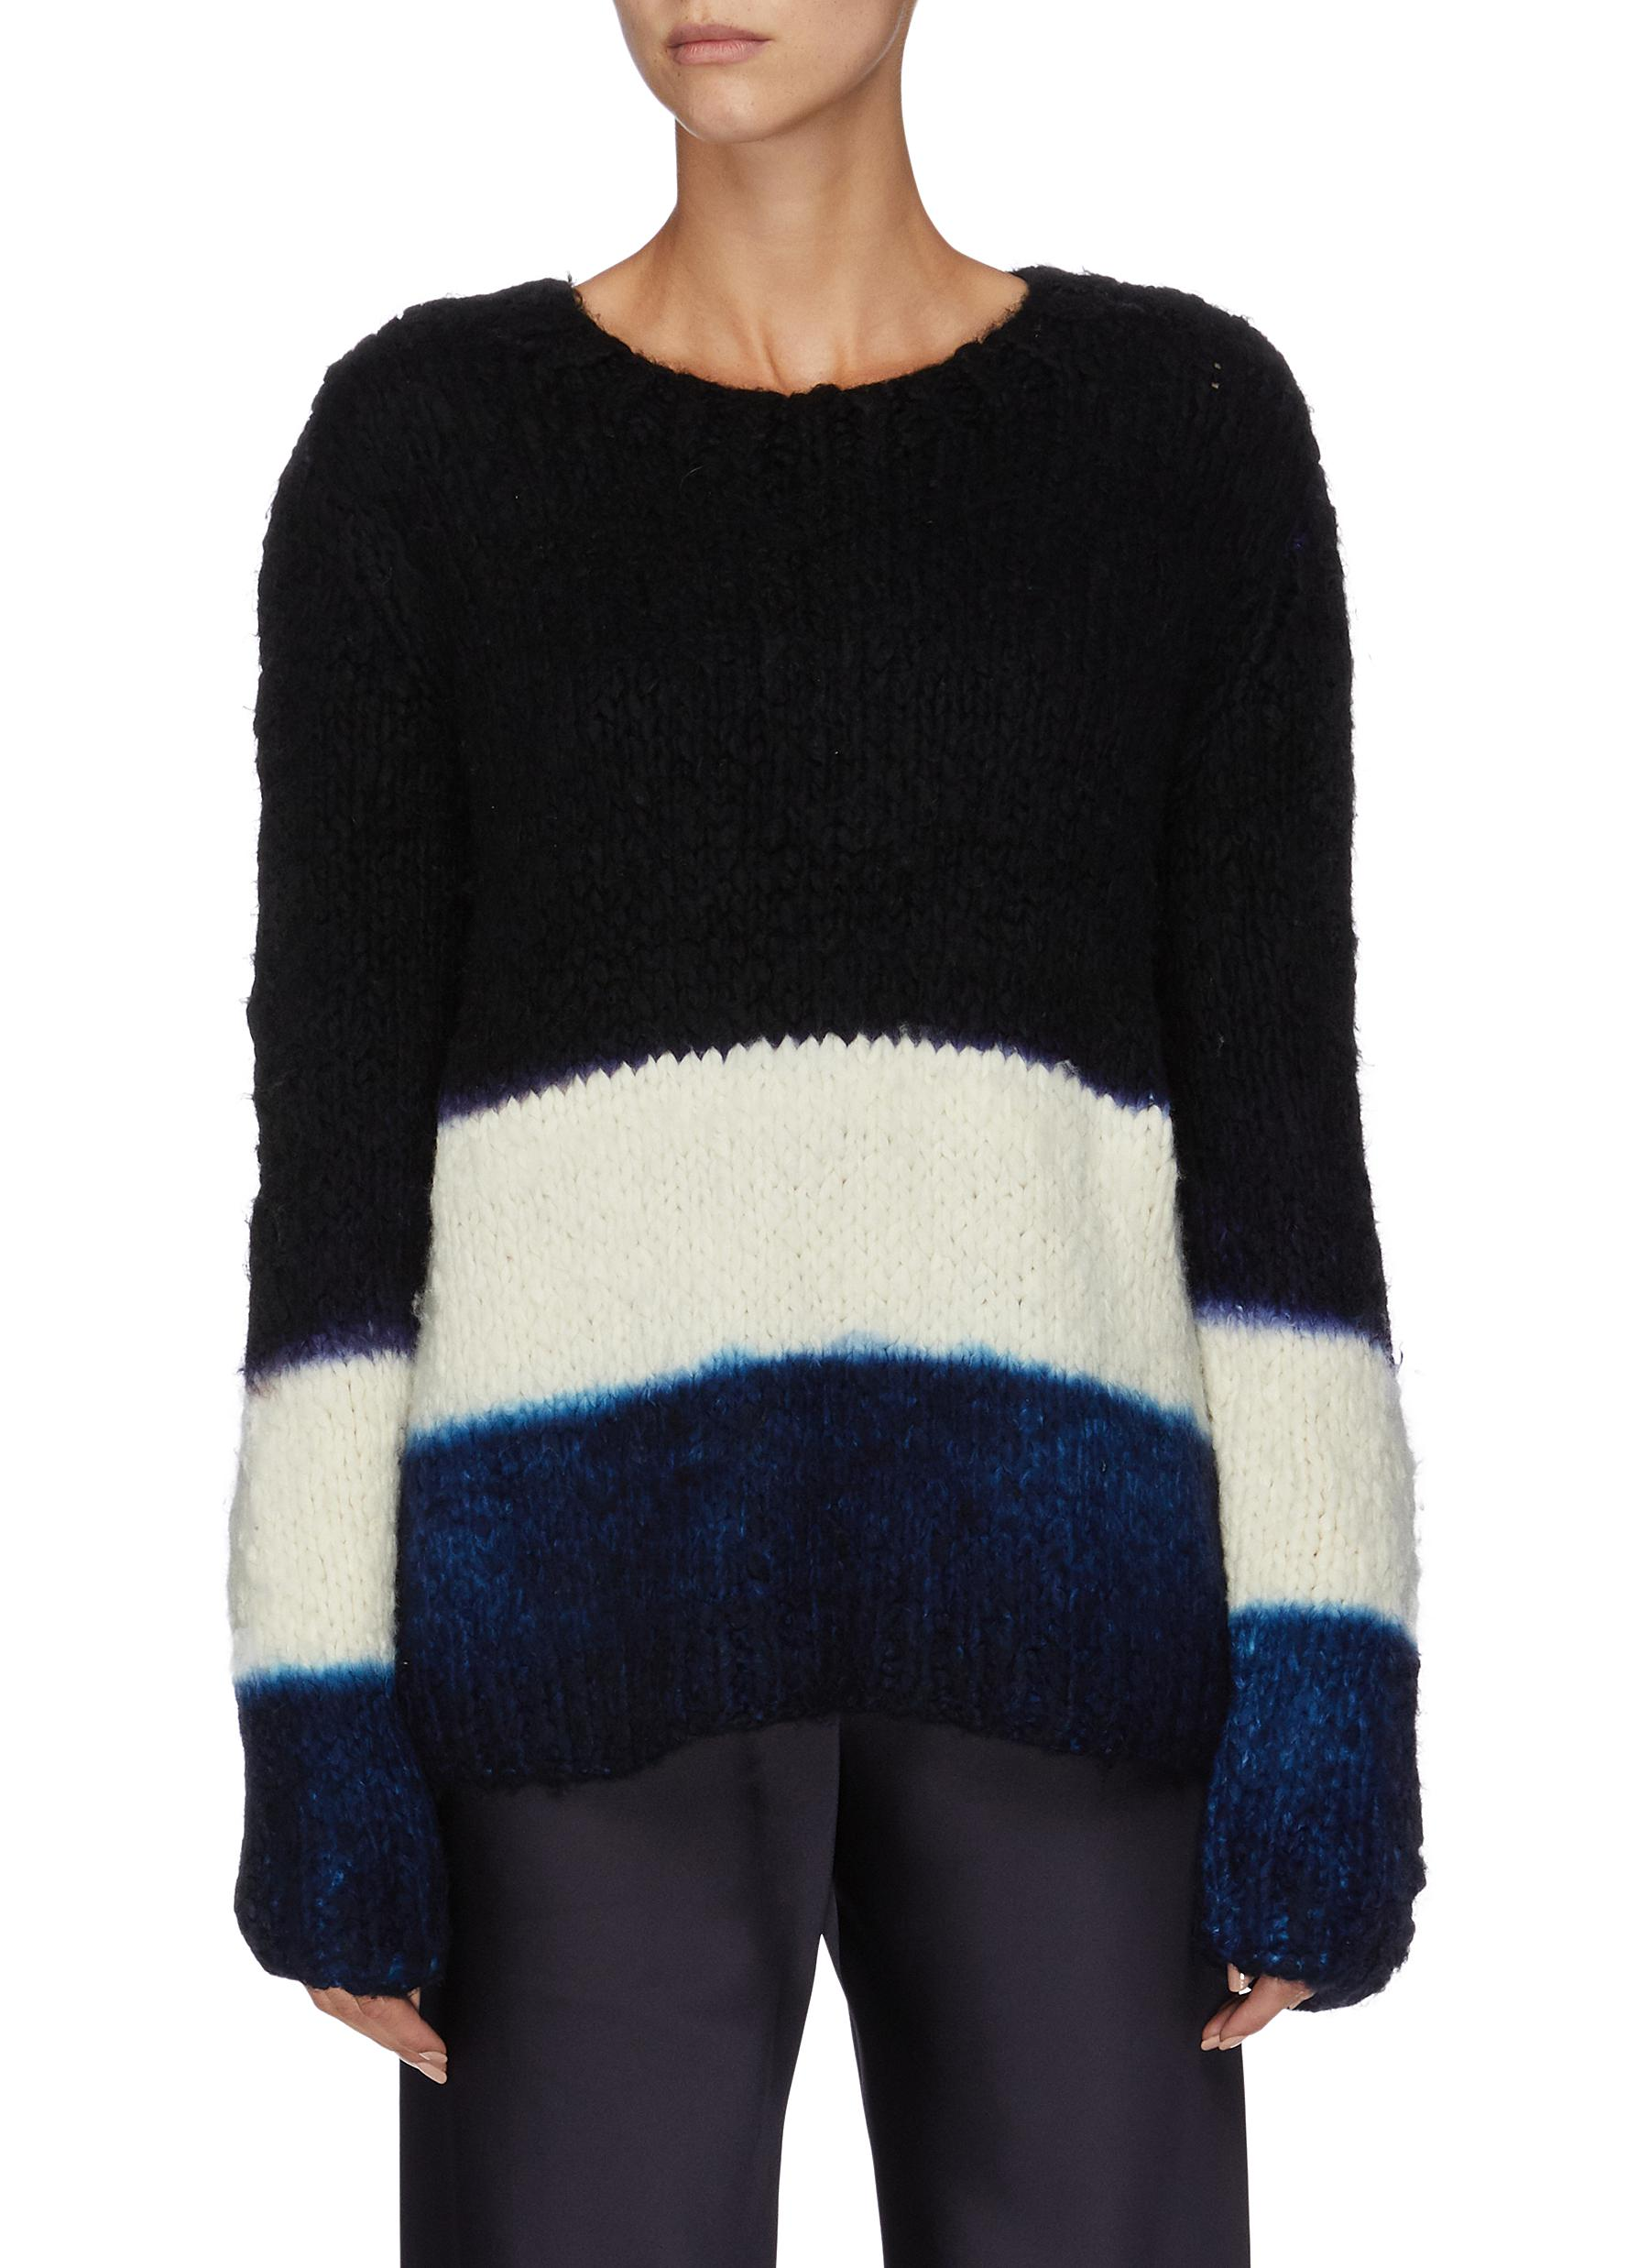 Lawrence dip dye cashmere sweater by Gabriela Hearst